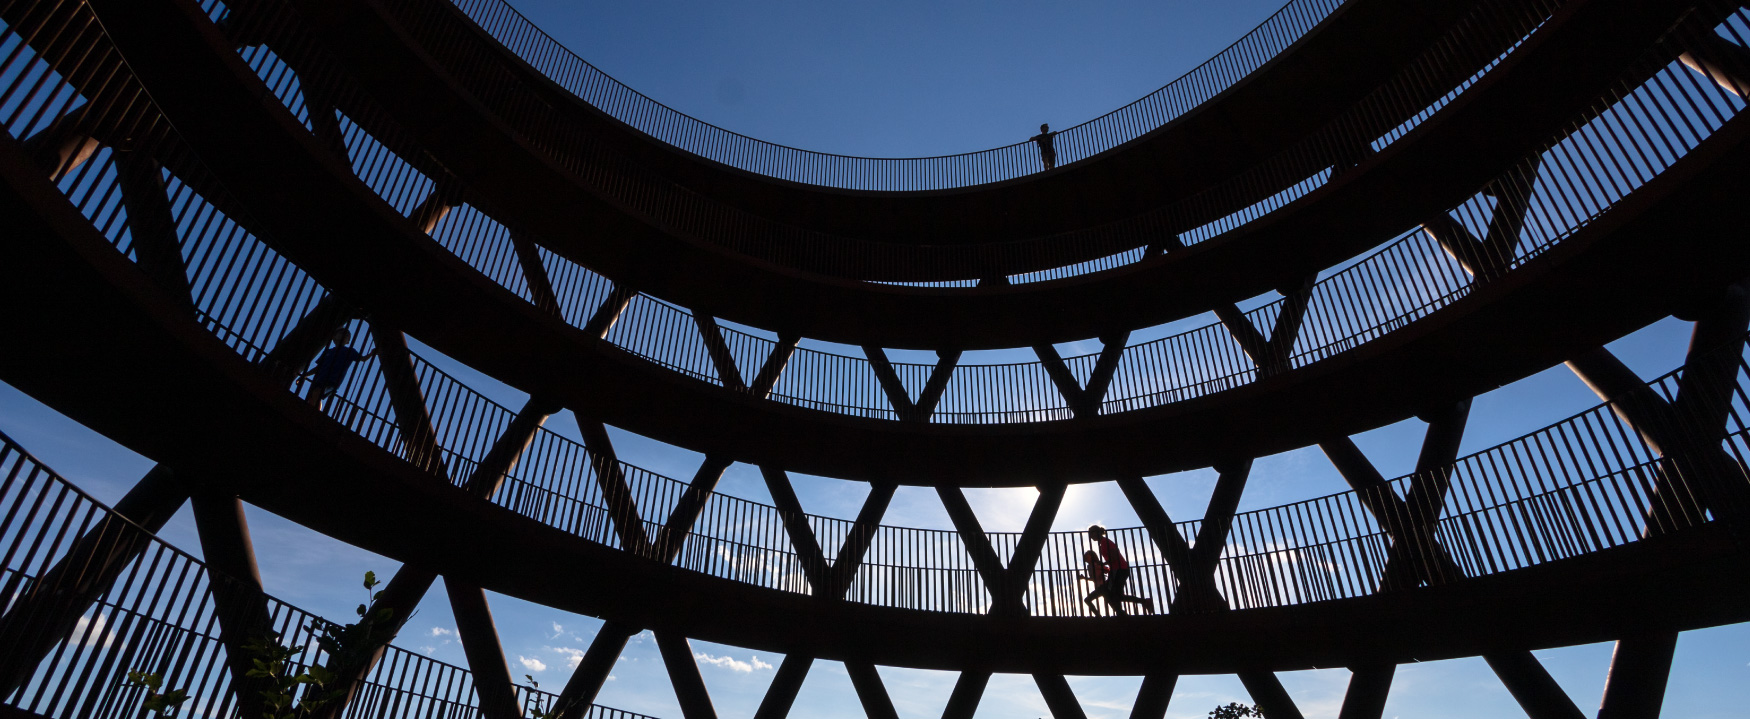 A photo shows a low-angle view of silhouettes of people walking or running in the high observation tower, Camp Adventures in Haslev on the South Island of New Zealand.